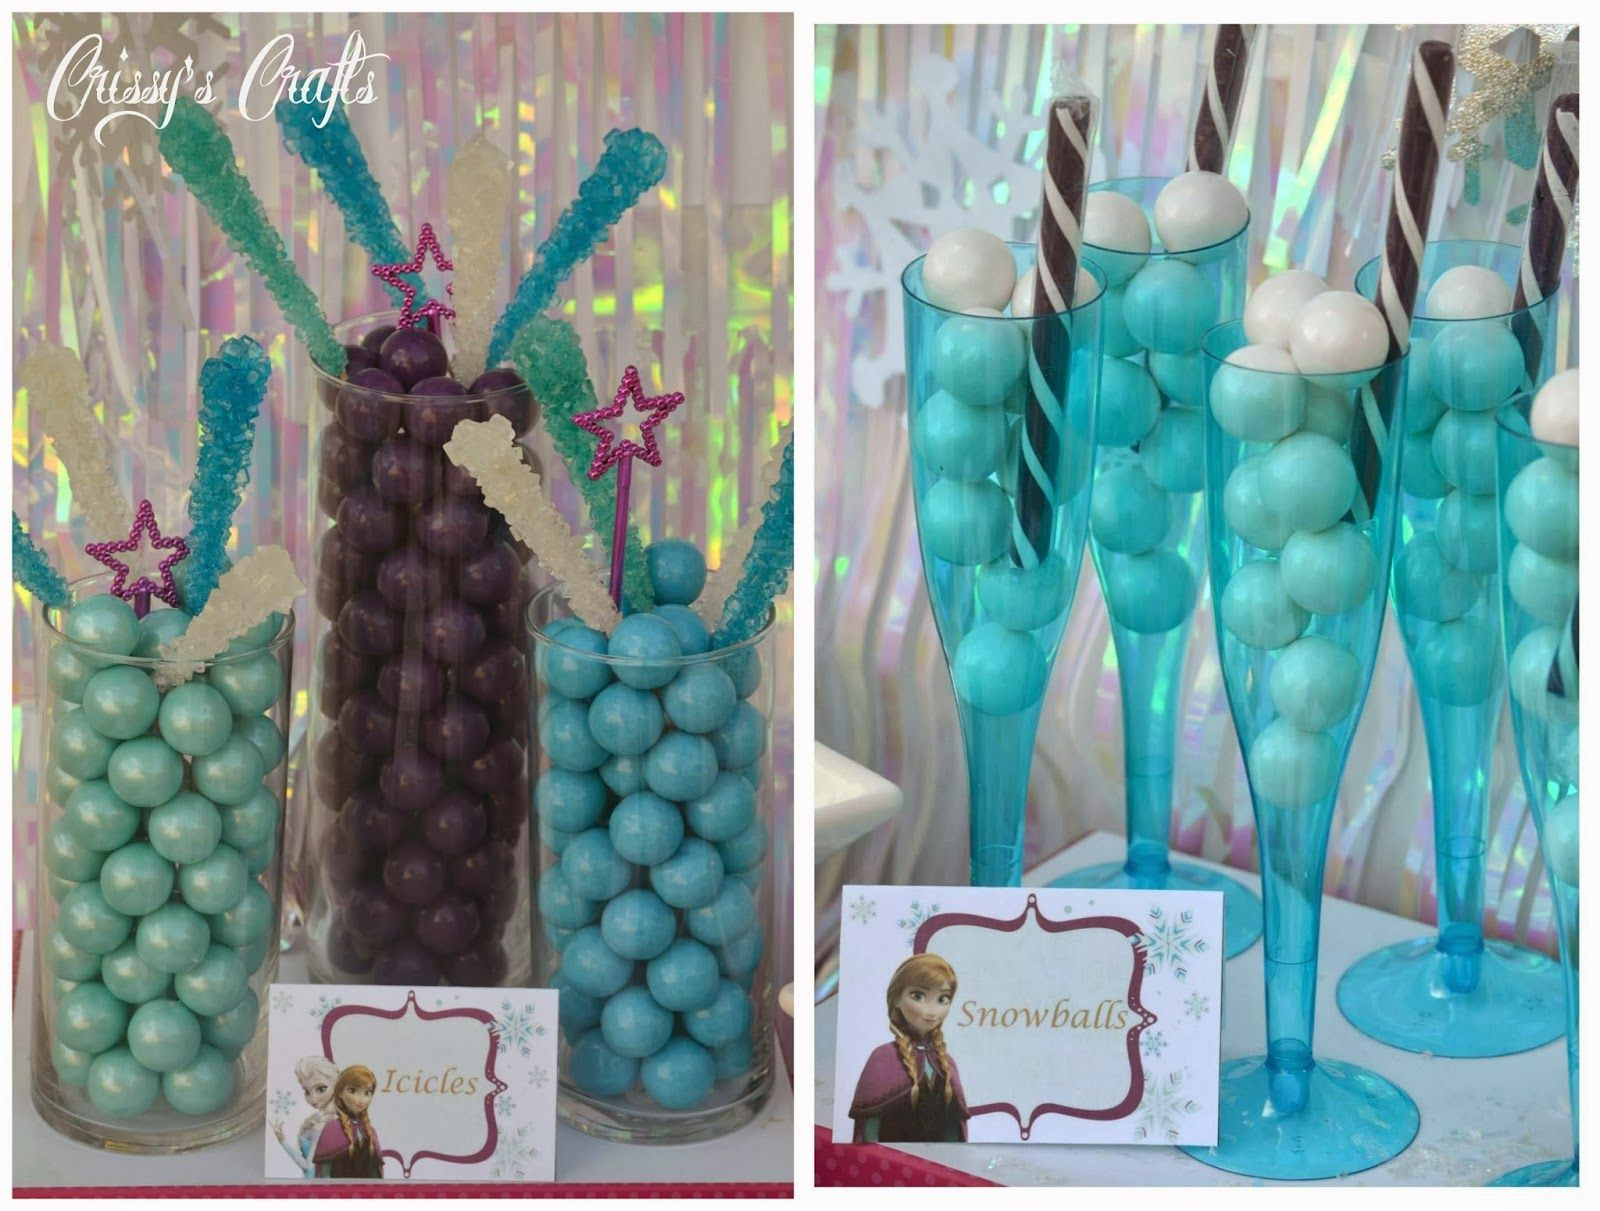 Frozen birthday party decorations ideas  Crissyus Crafts Disneyus Frozen Party  GIVEAWAY  Party party